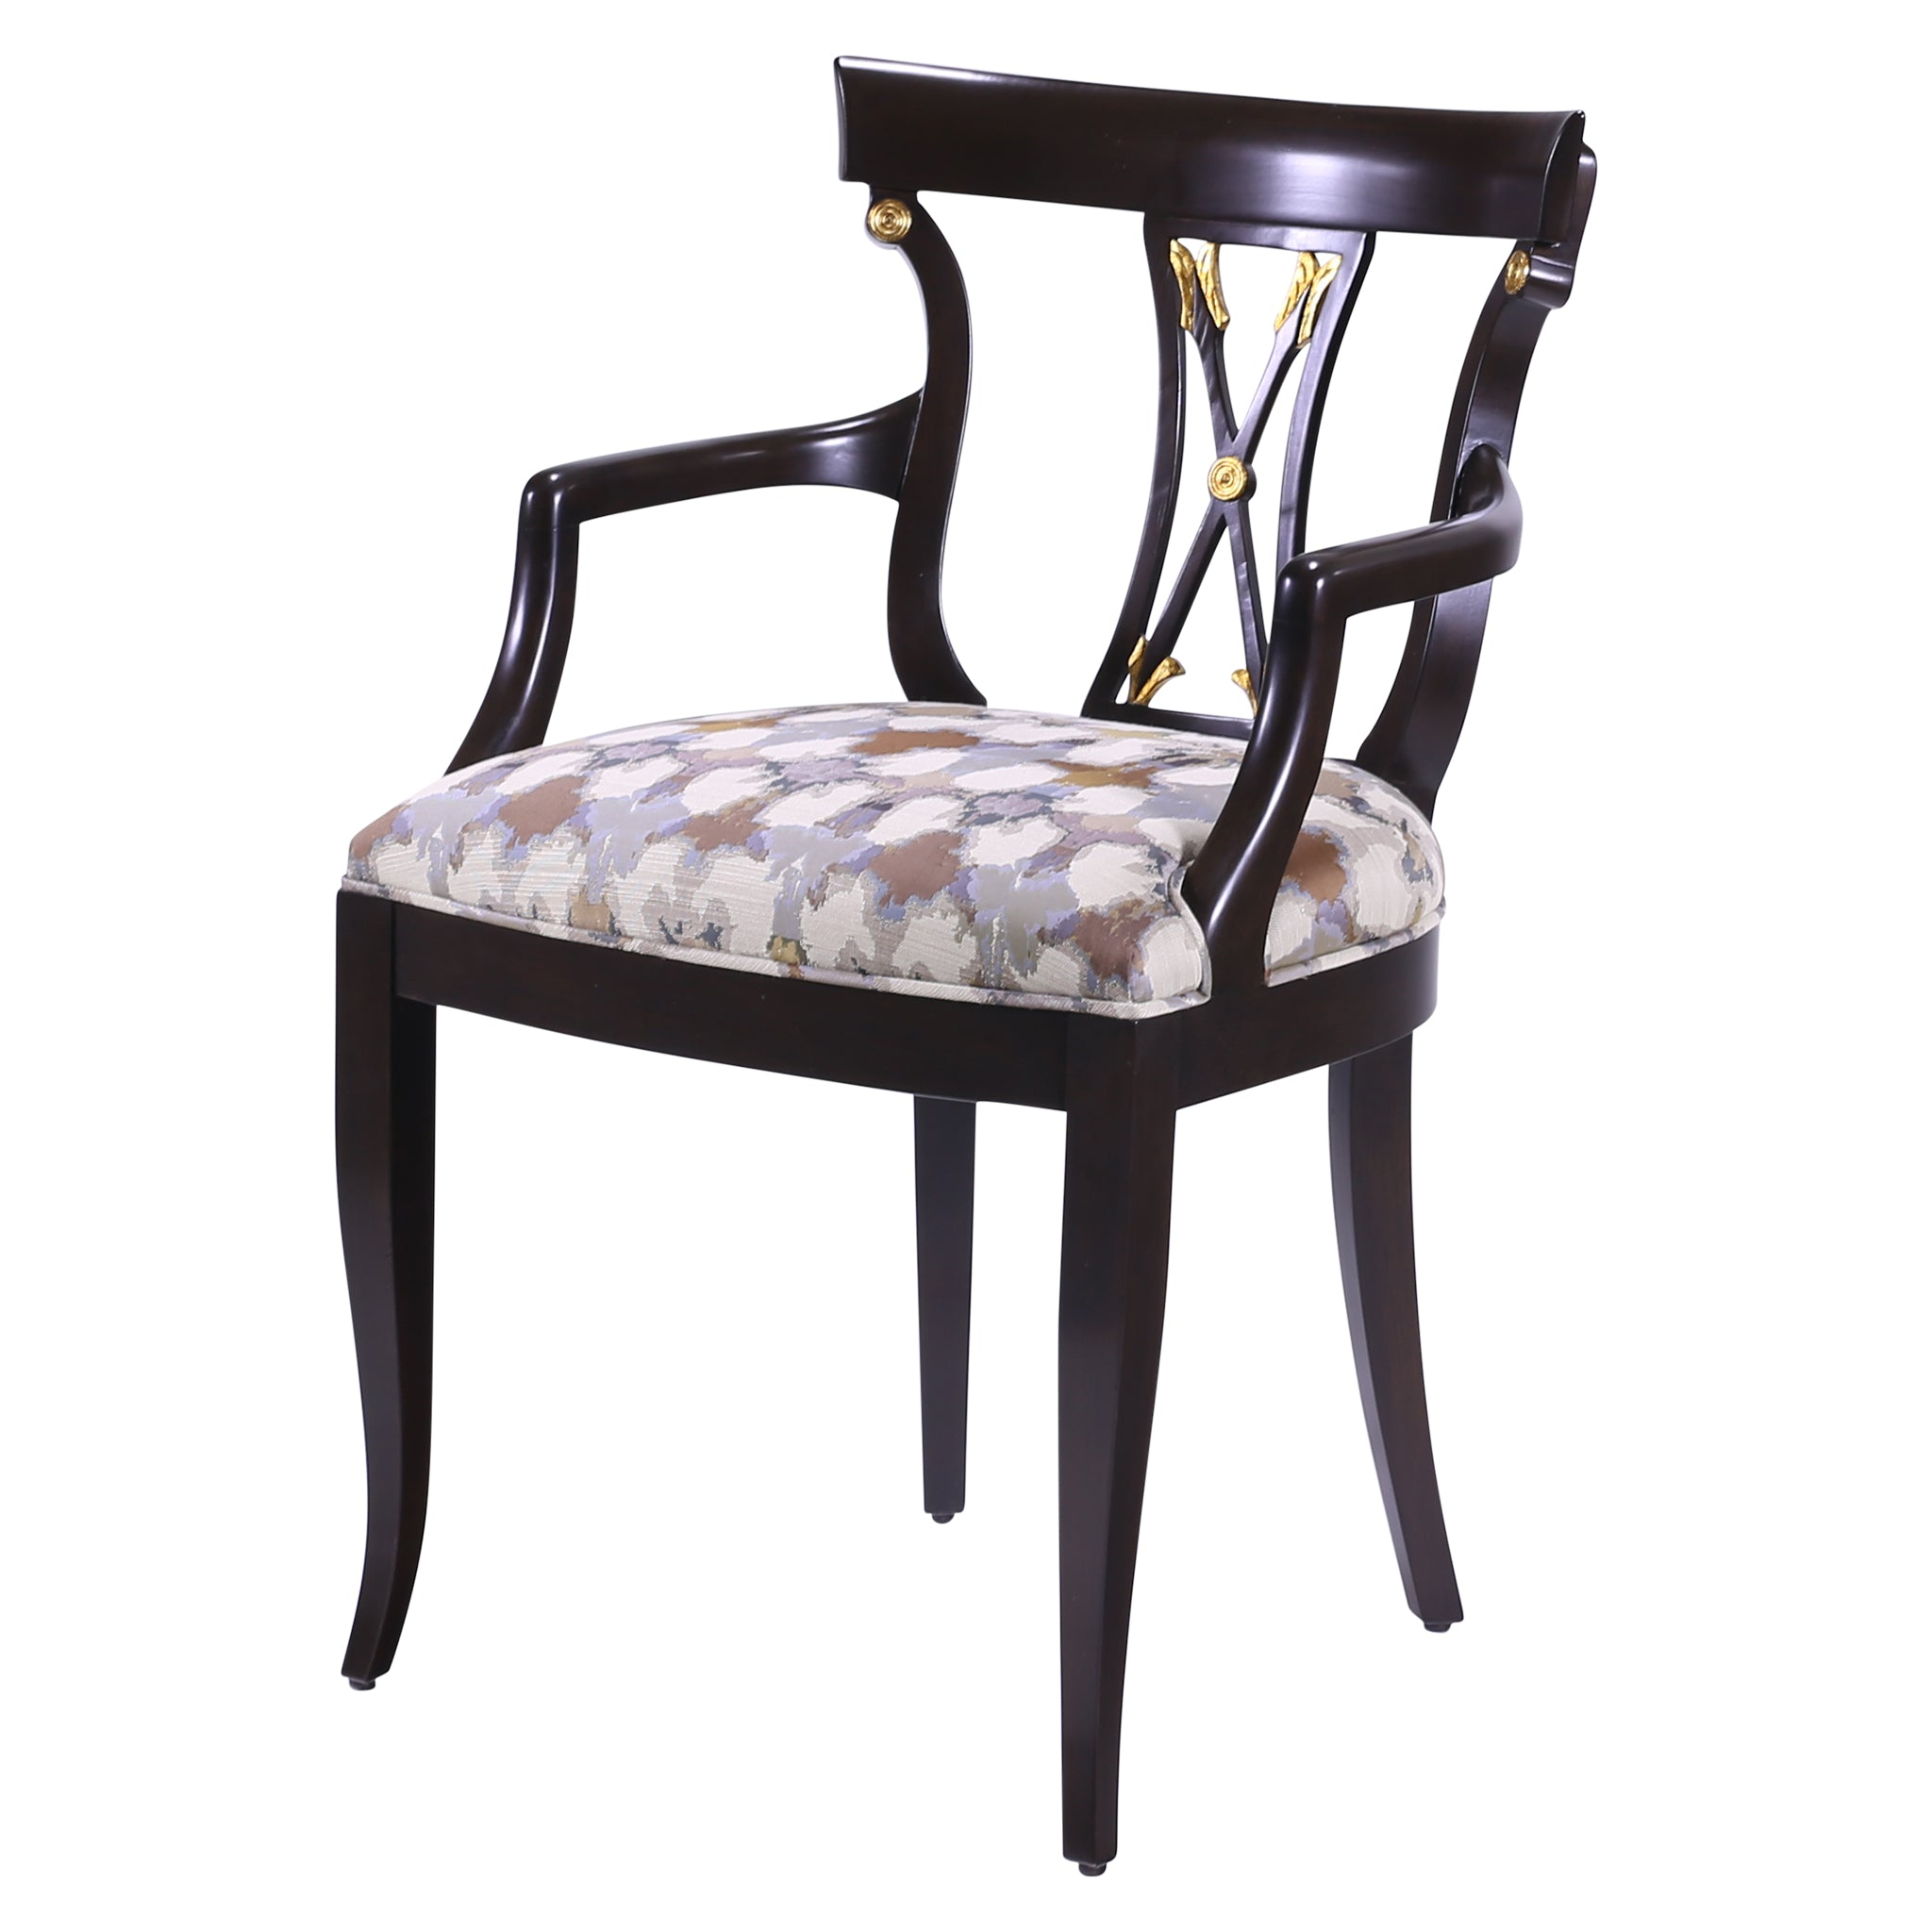 AUSTRIAN BIEDERMEIER STYLEARROWBACK ARMCHAIR – William Switzer